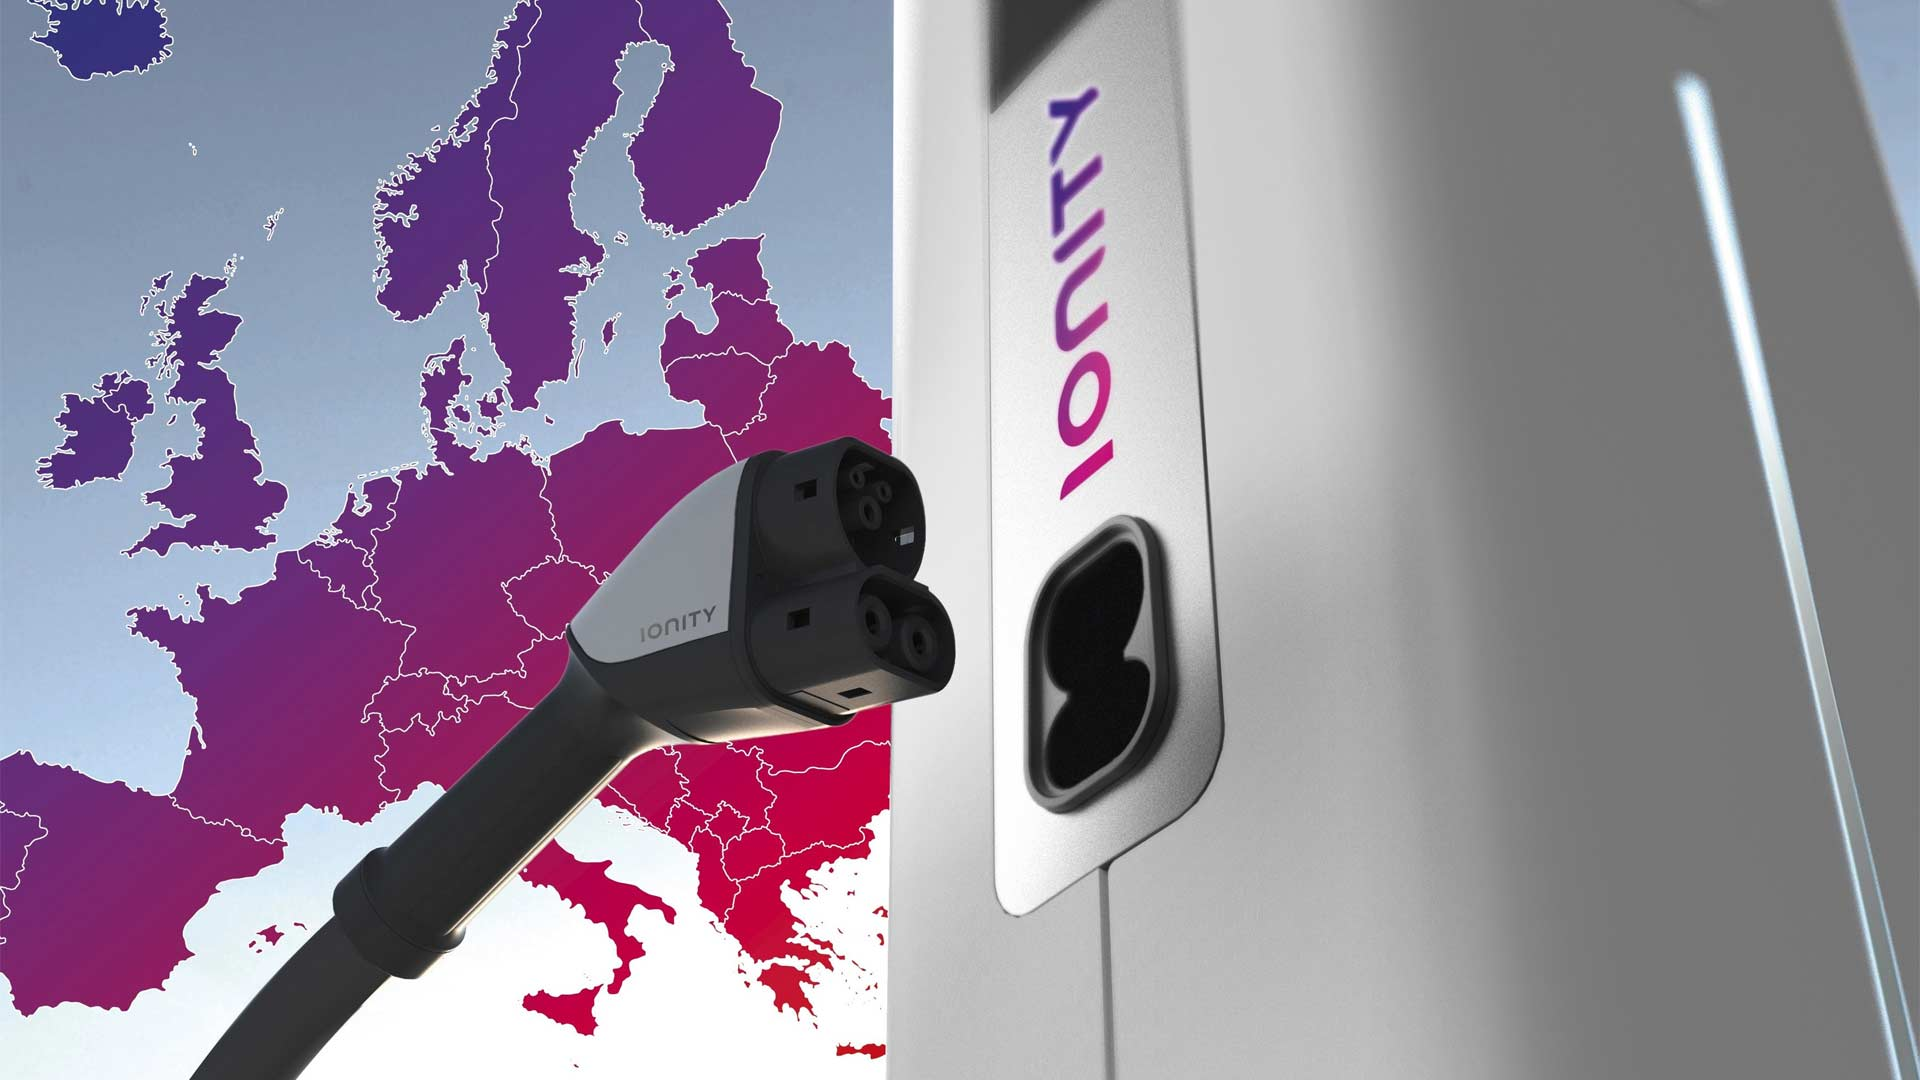 IONITY-Pan-European-High-Power-Charging-Network